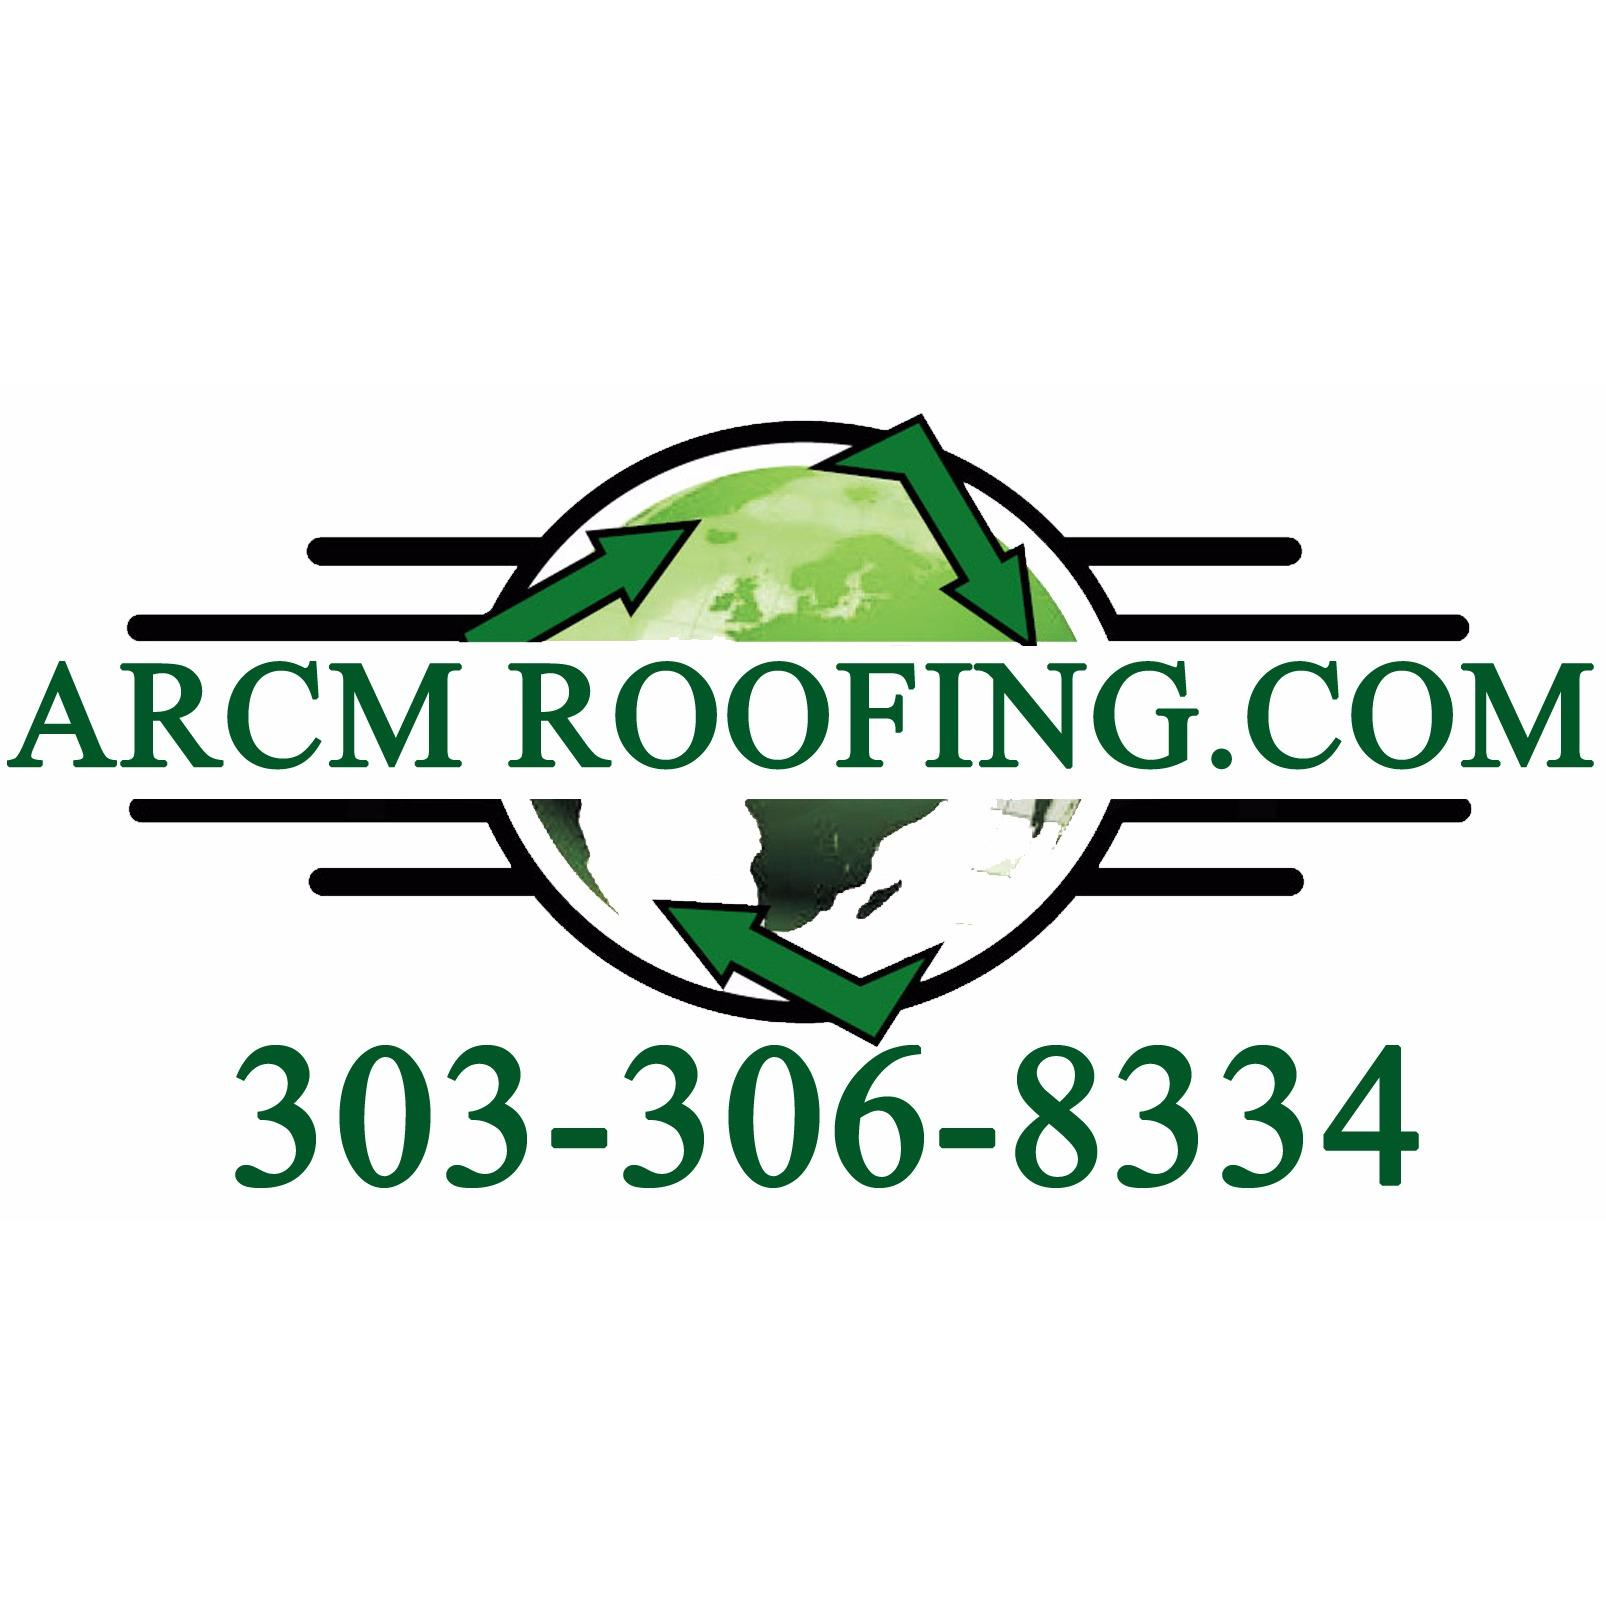 ARCM Roofing Inc.